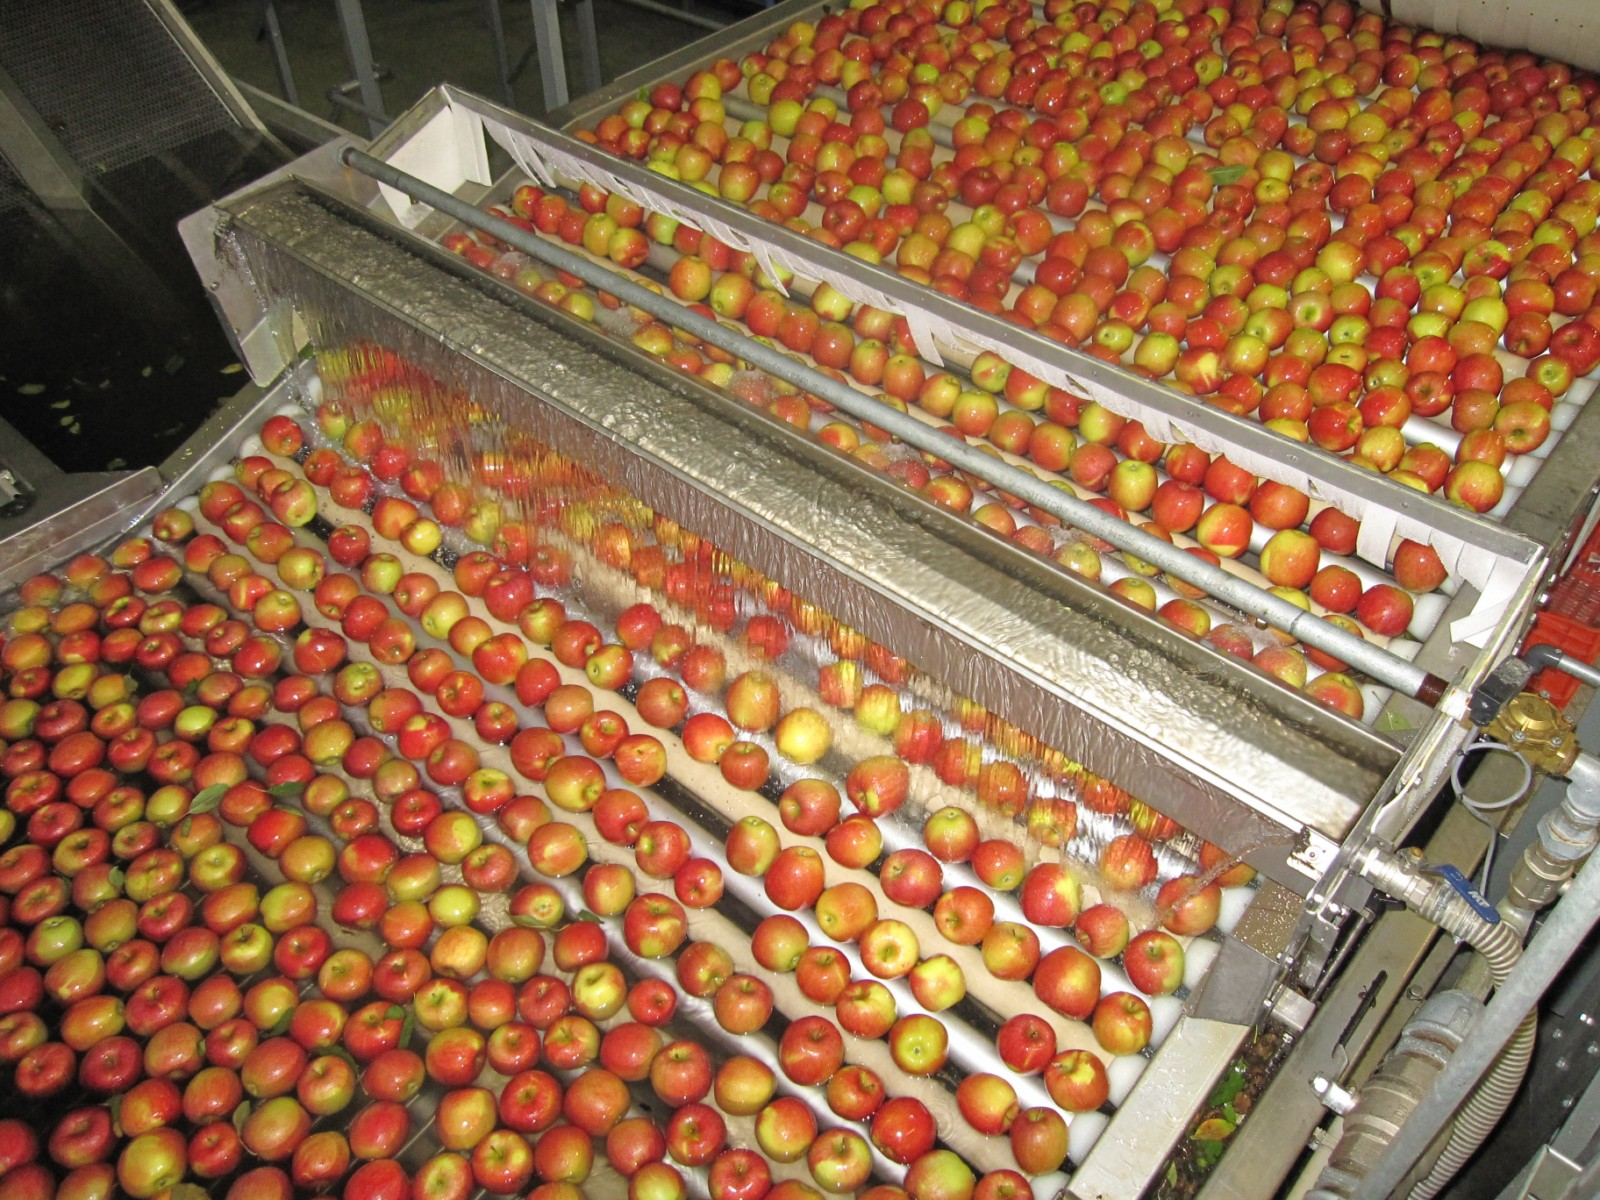 Rinsing fruit - Waterfall on roller elevator